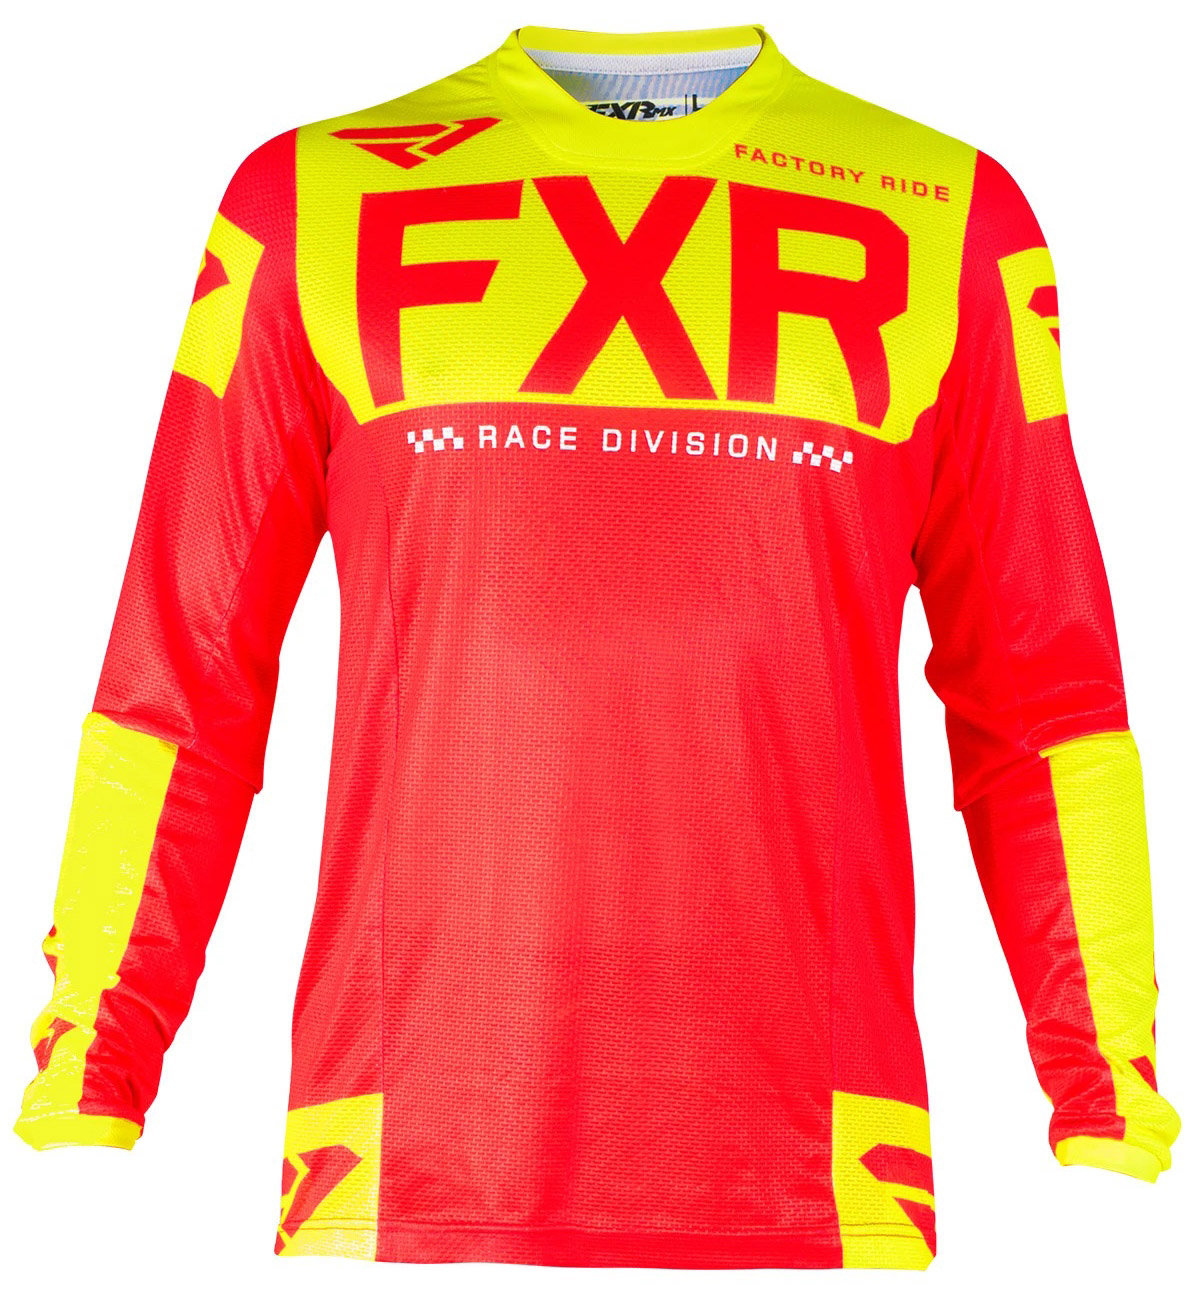 193310-2065 FXR Racing MX Helium Air Jersey Red HiVis Cross Trui Trikot Maillot